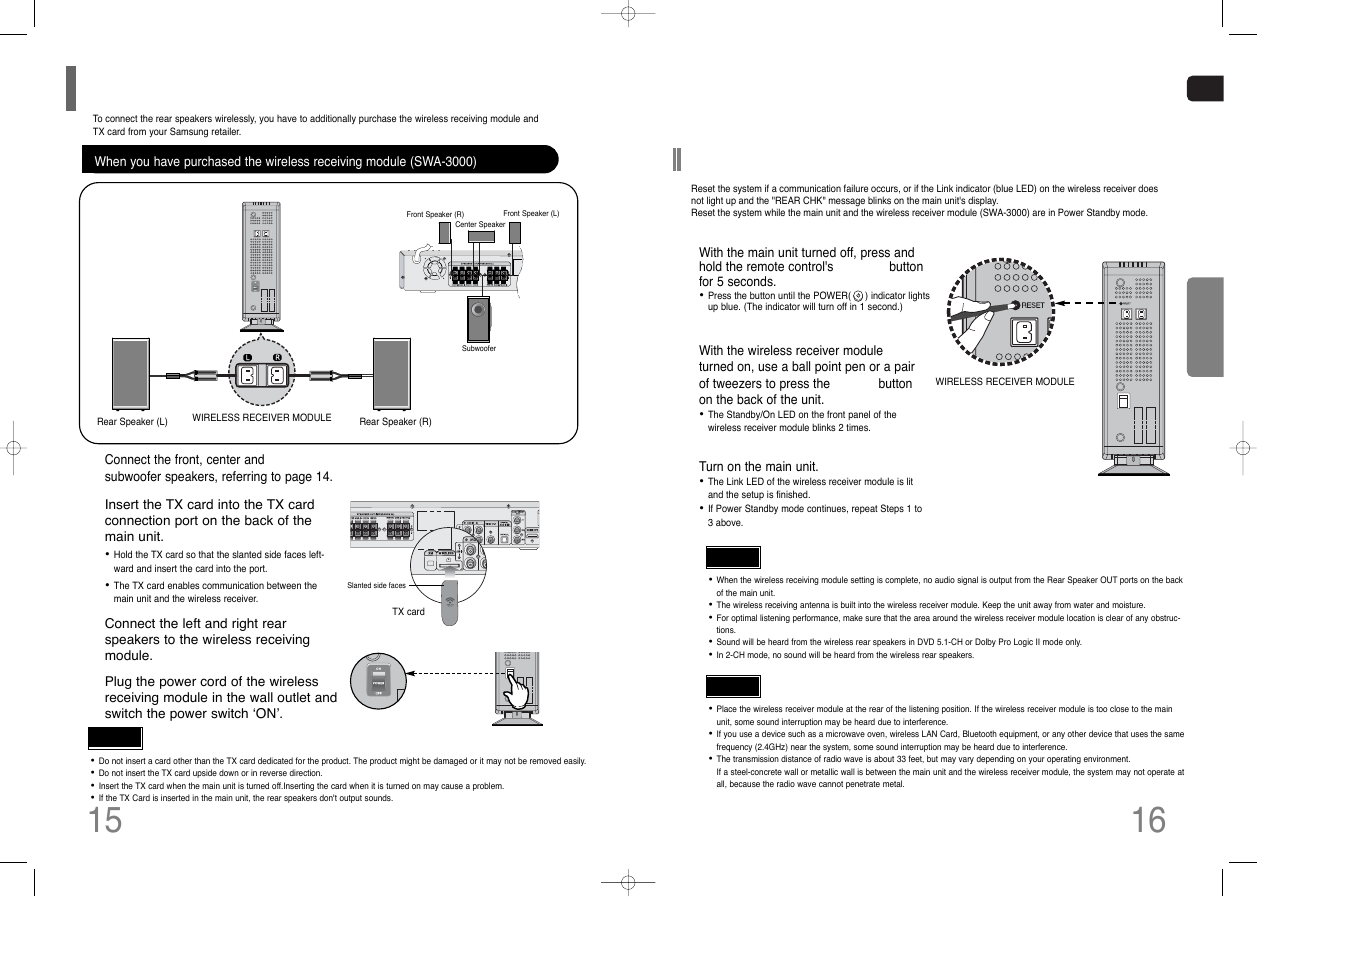 Resetting wireless communication | Samsung HT-Q70 User Manual | Page